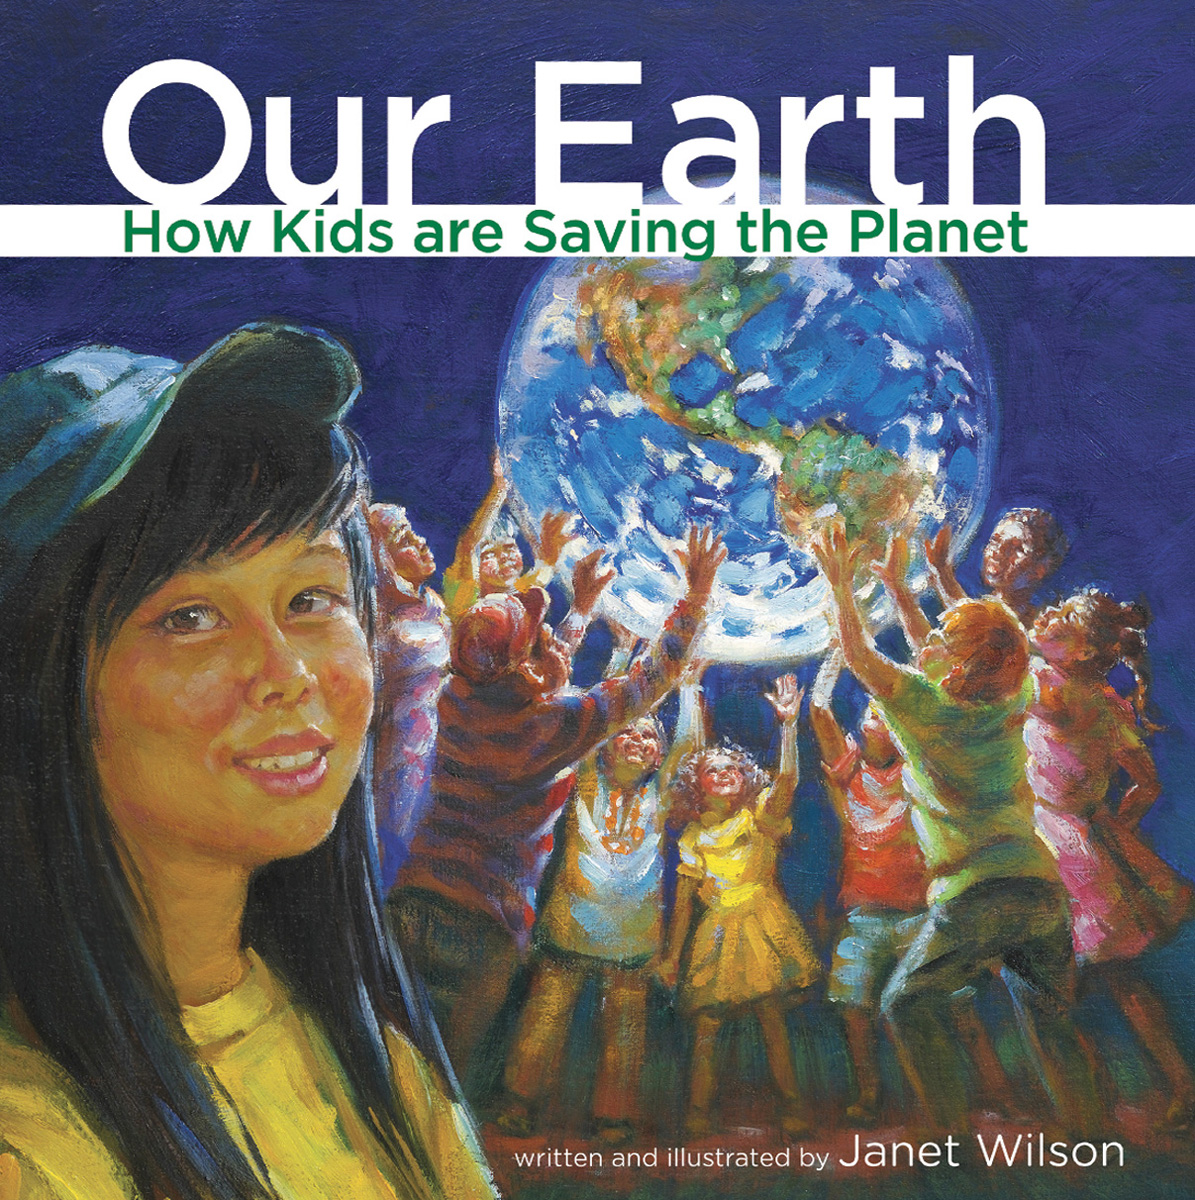 Our Earth: How Kids are Saving the Planet